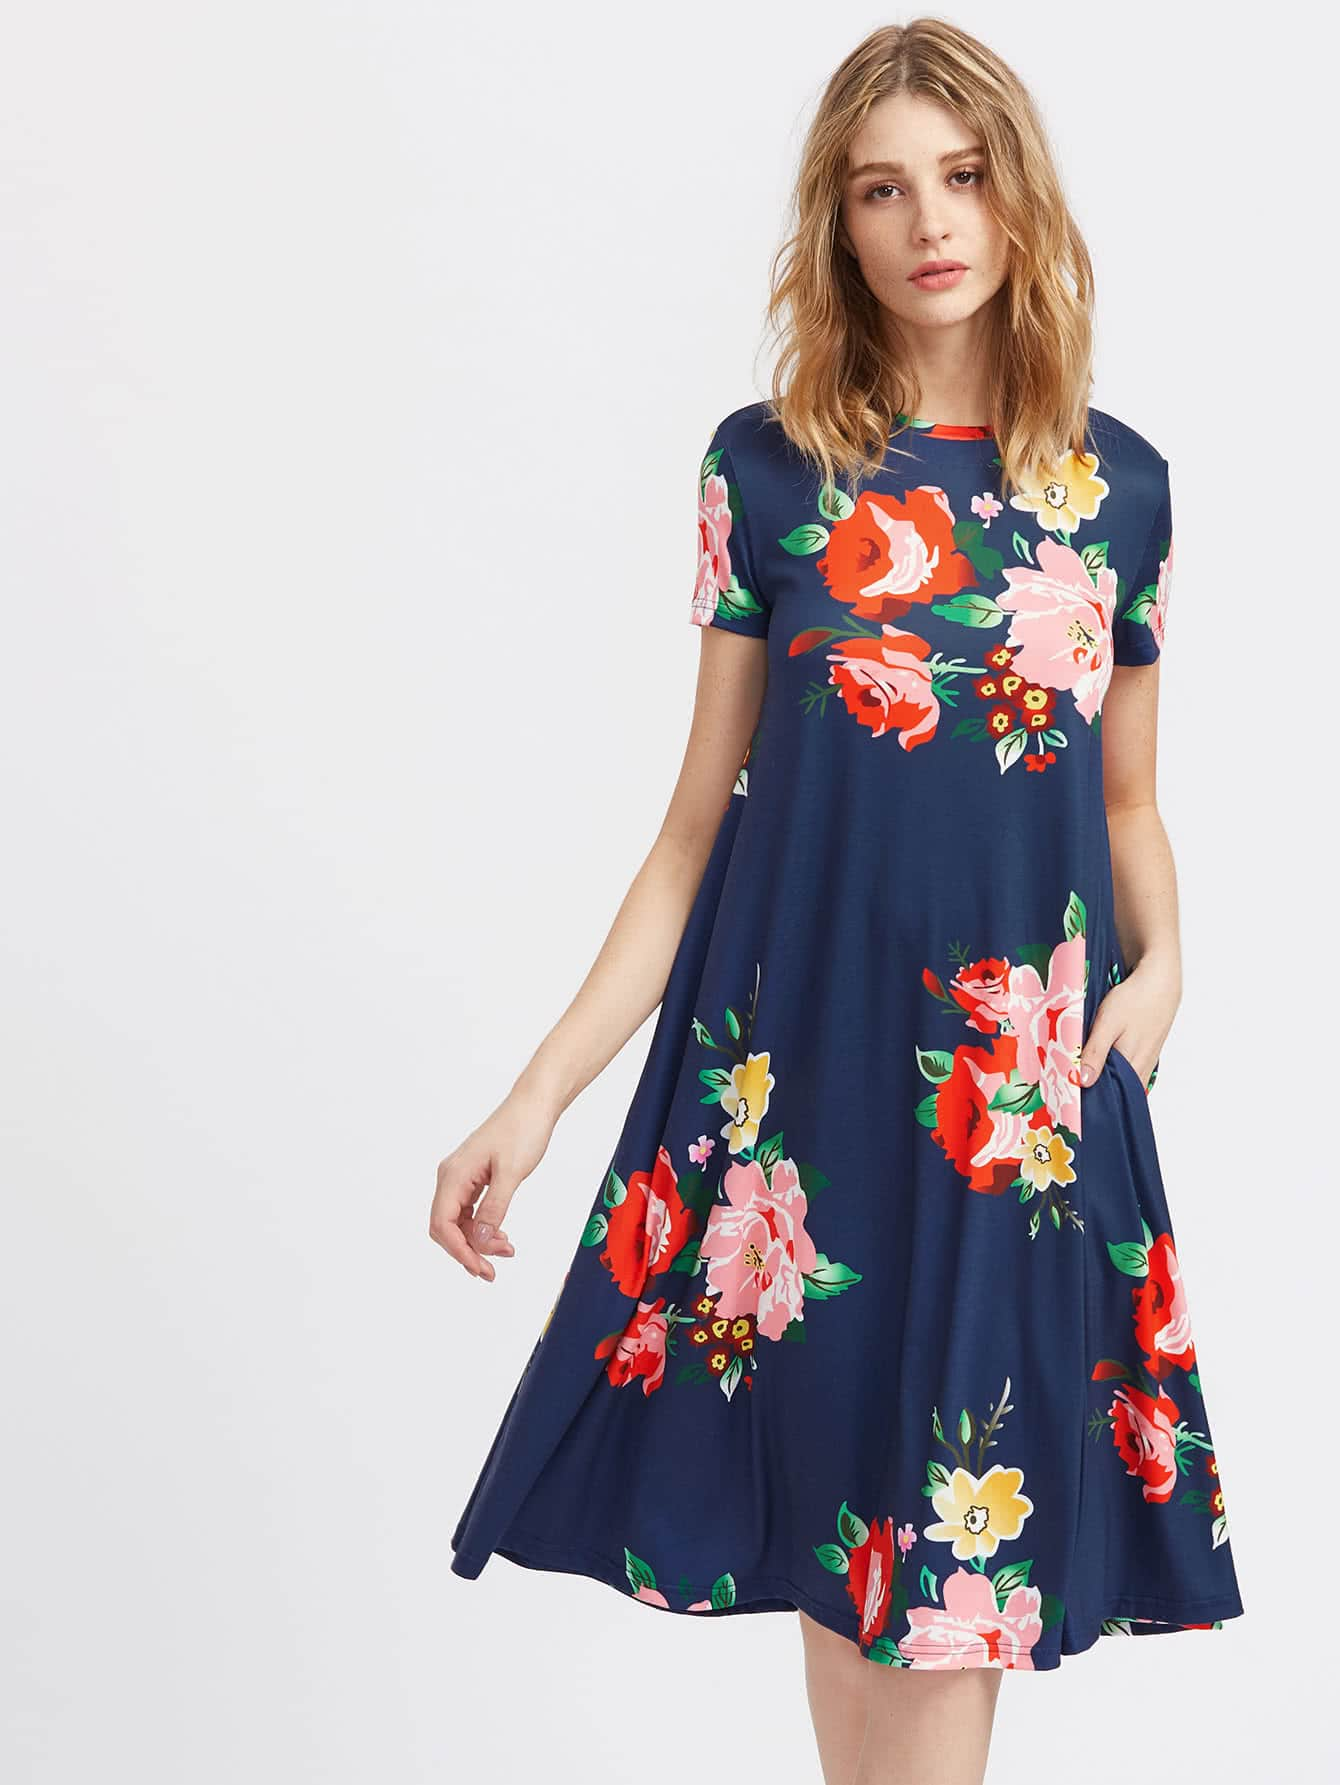 Flower Print Side Pocket Detail Swing Tee Dress pocket full length tee dress page 10